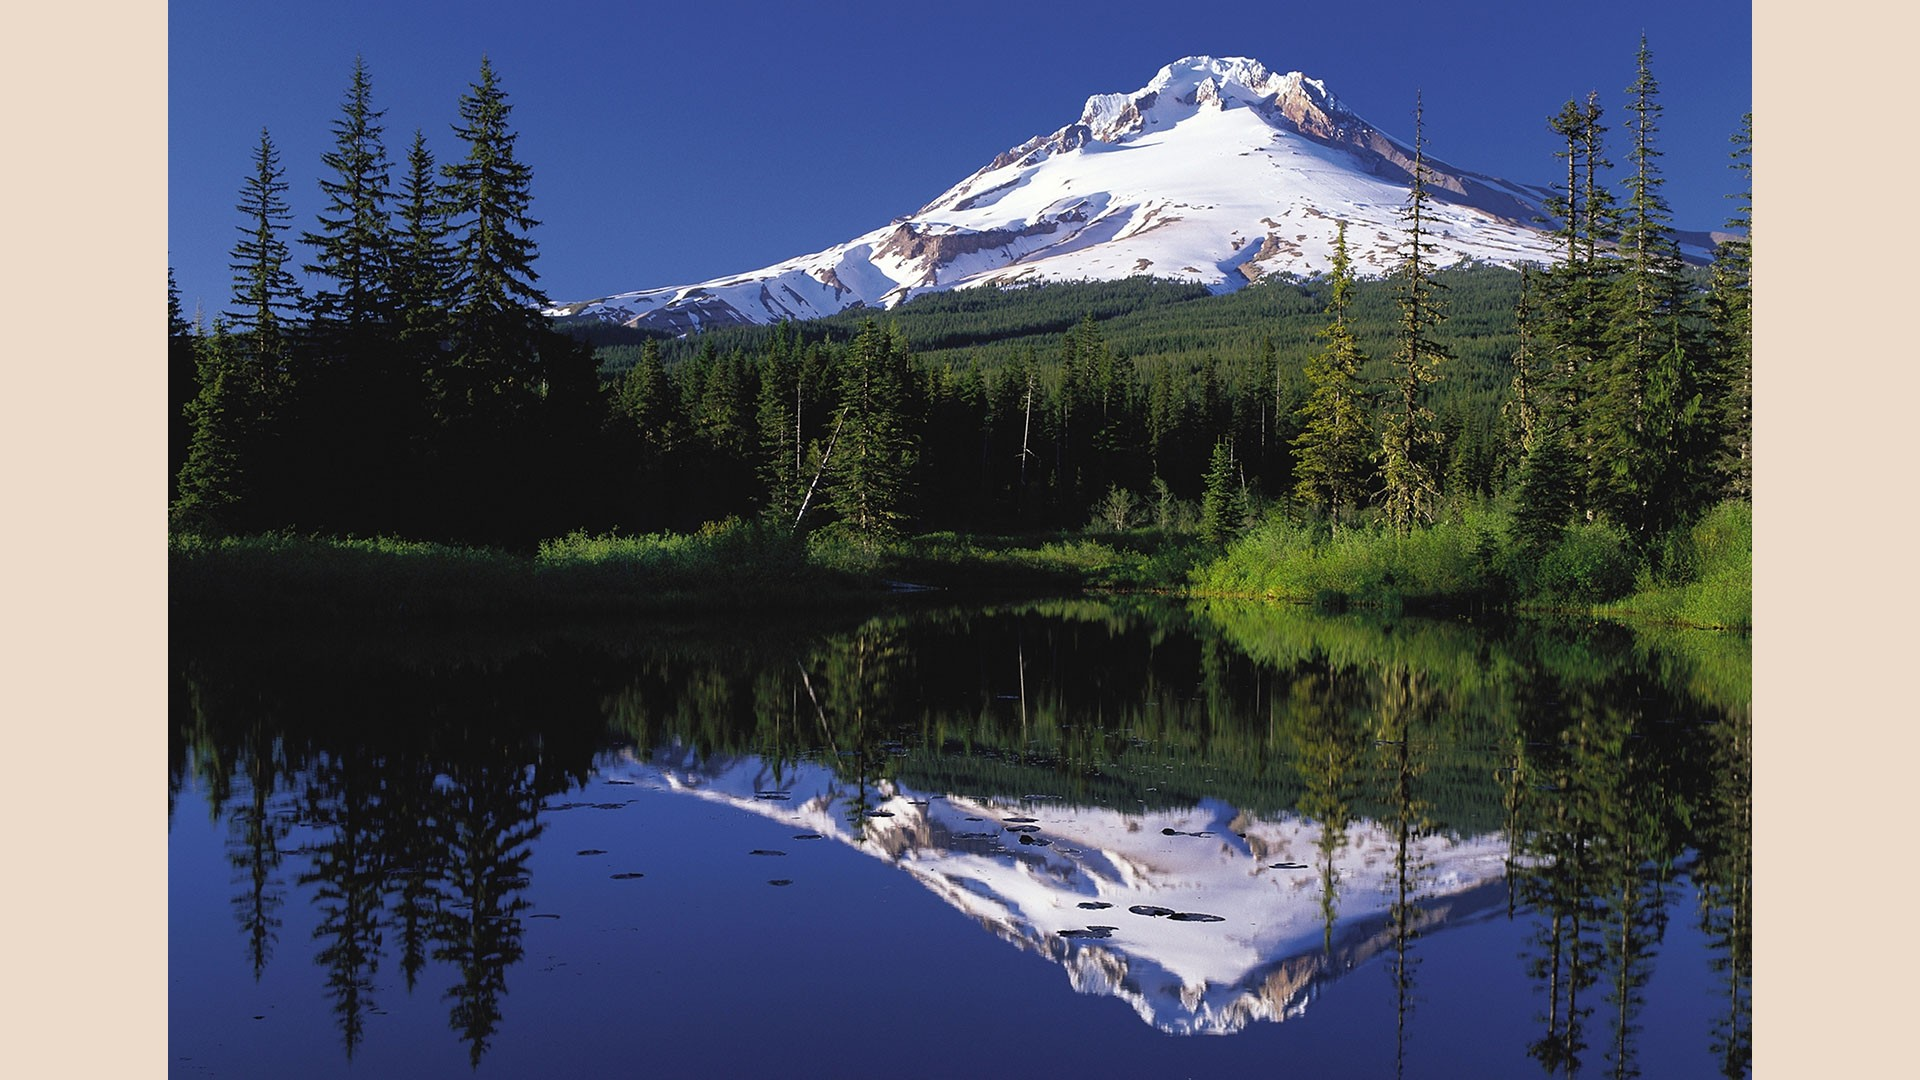 Reflection of MT Hood on a mirror-like lake